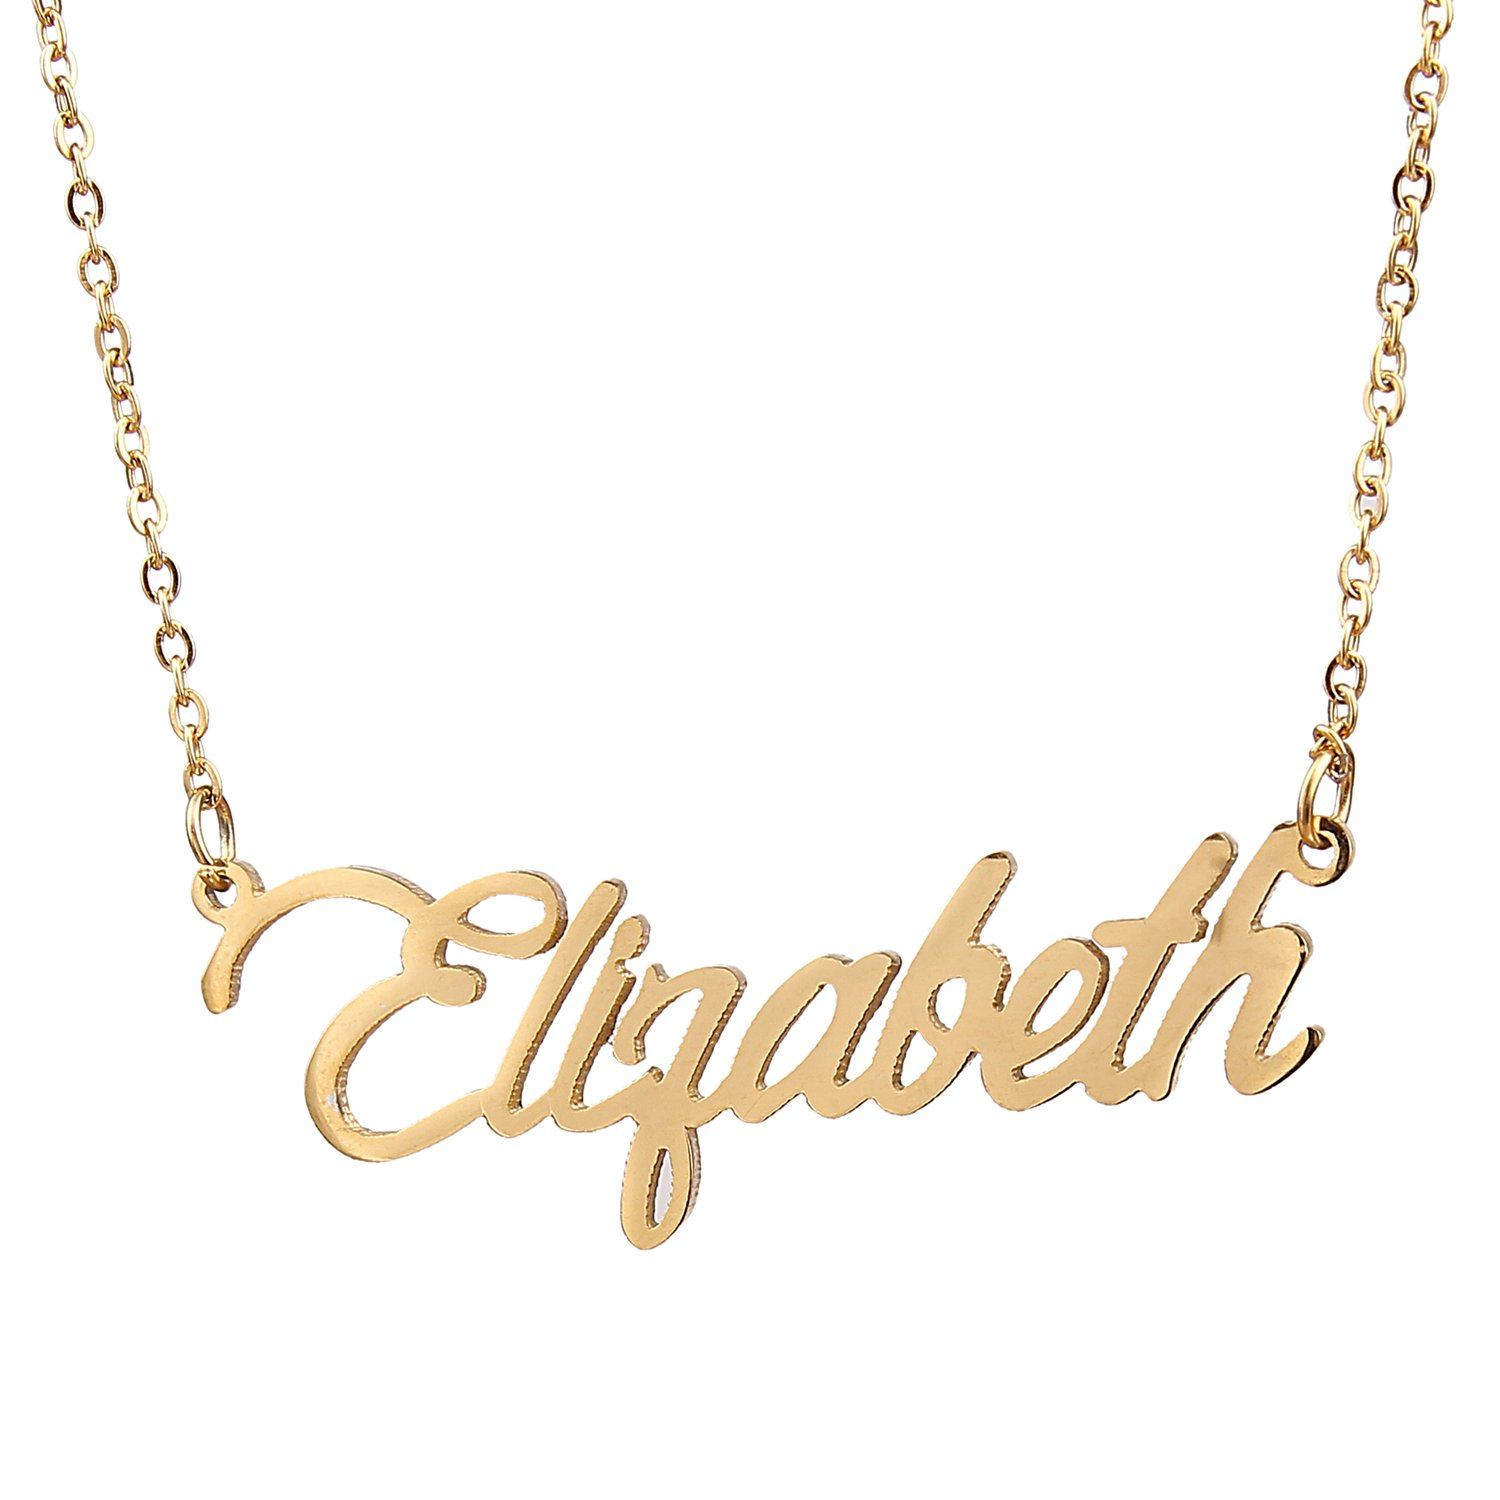 jewellery shop disney il dpok necklace style name fullxfull ashleeartis